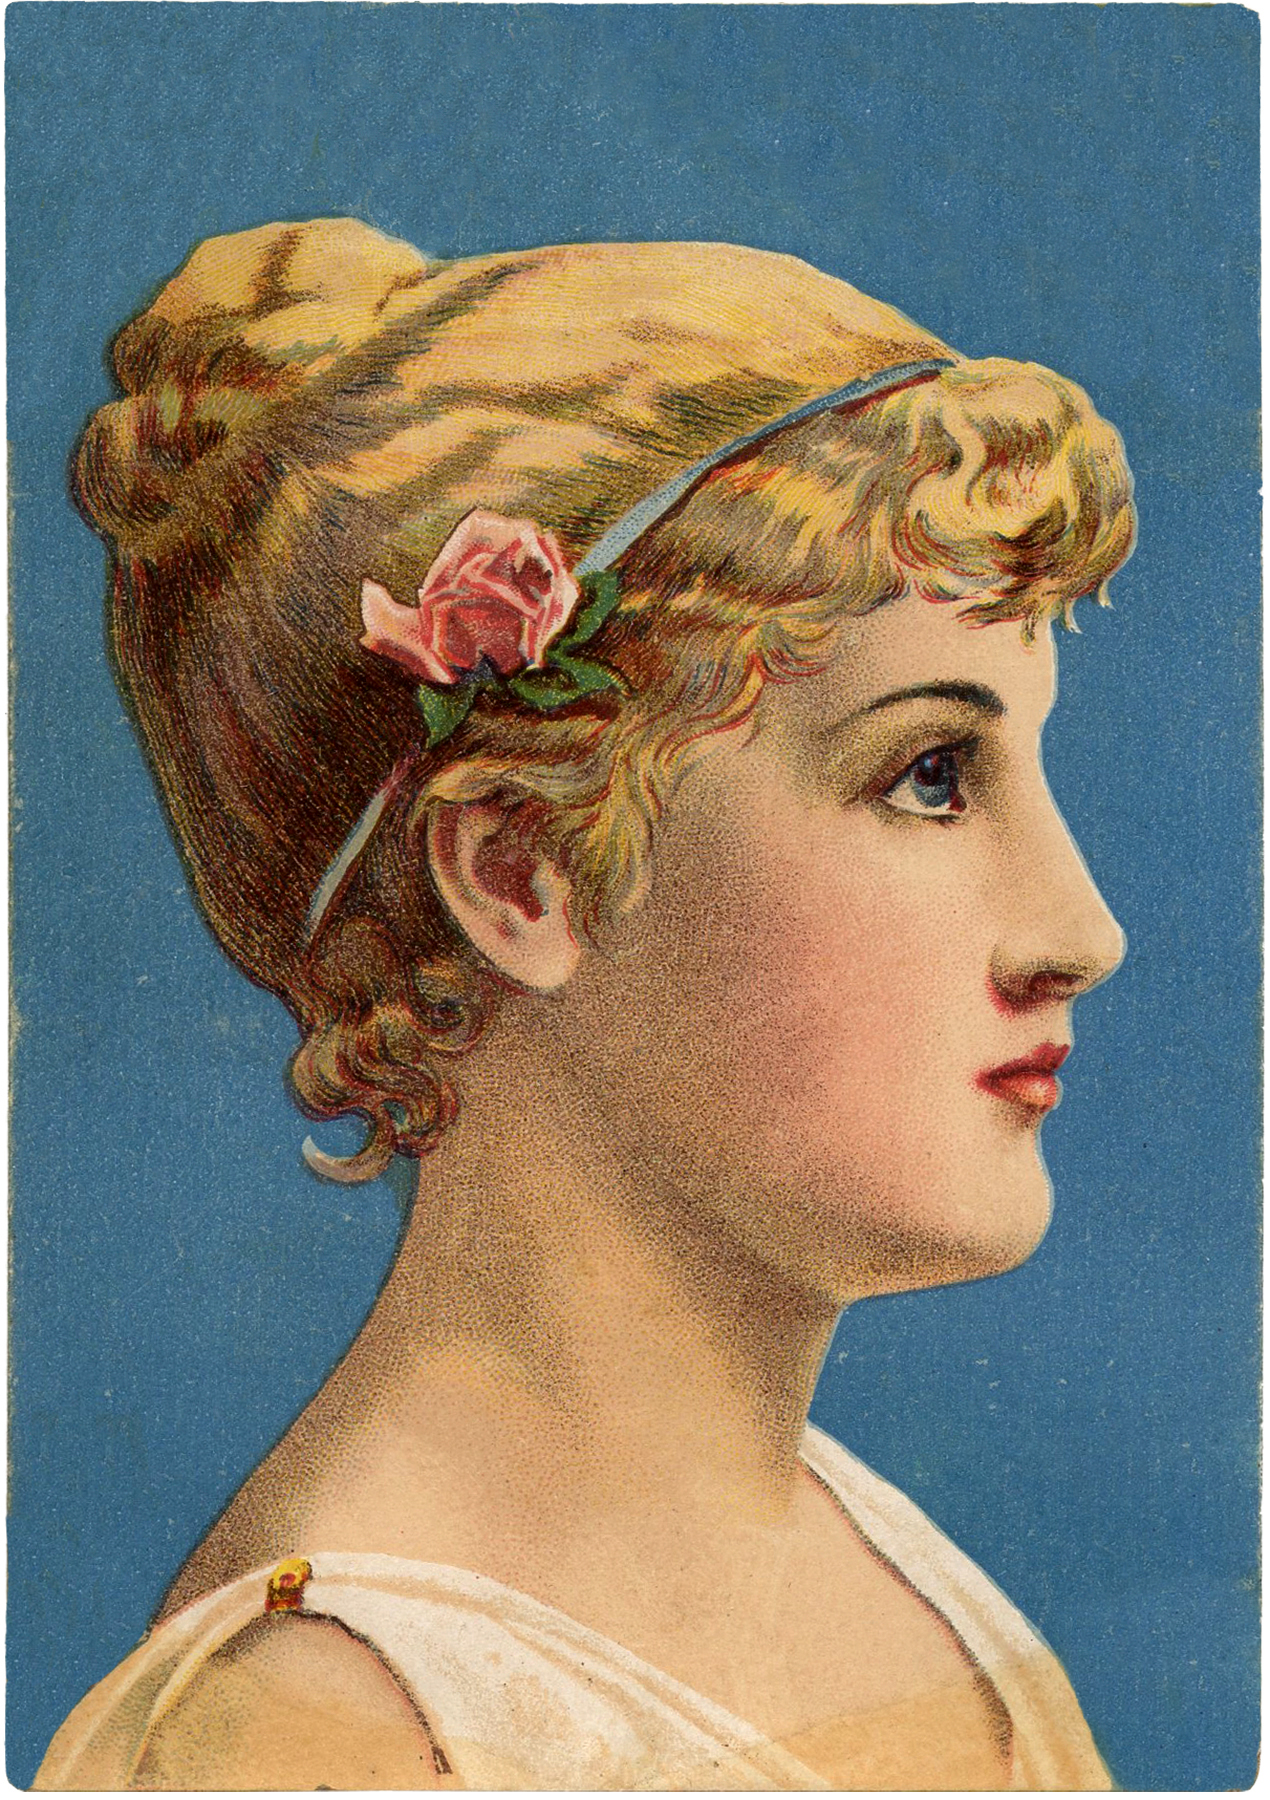 Vintage Beauty Profile Image The Graphics Fairy